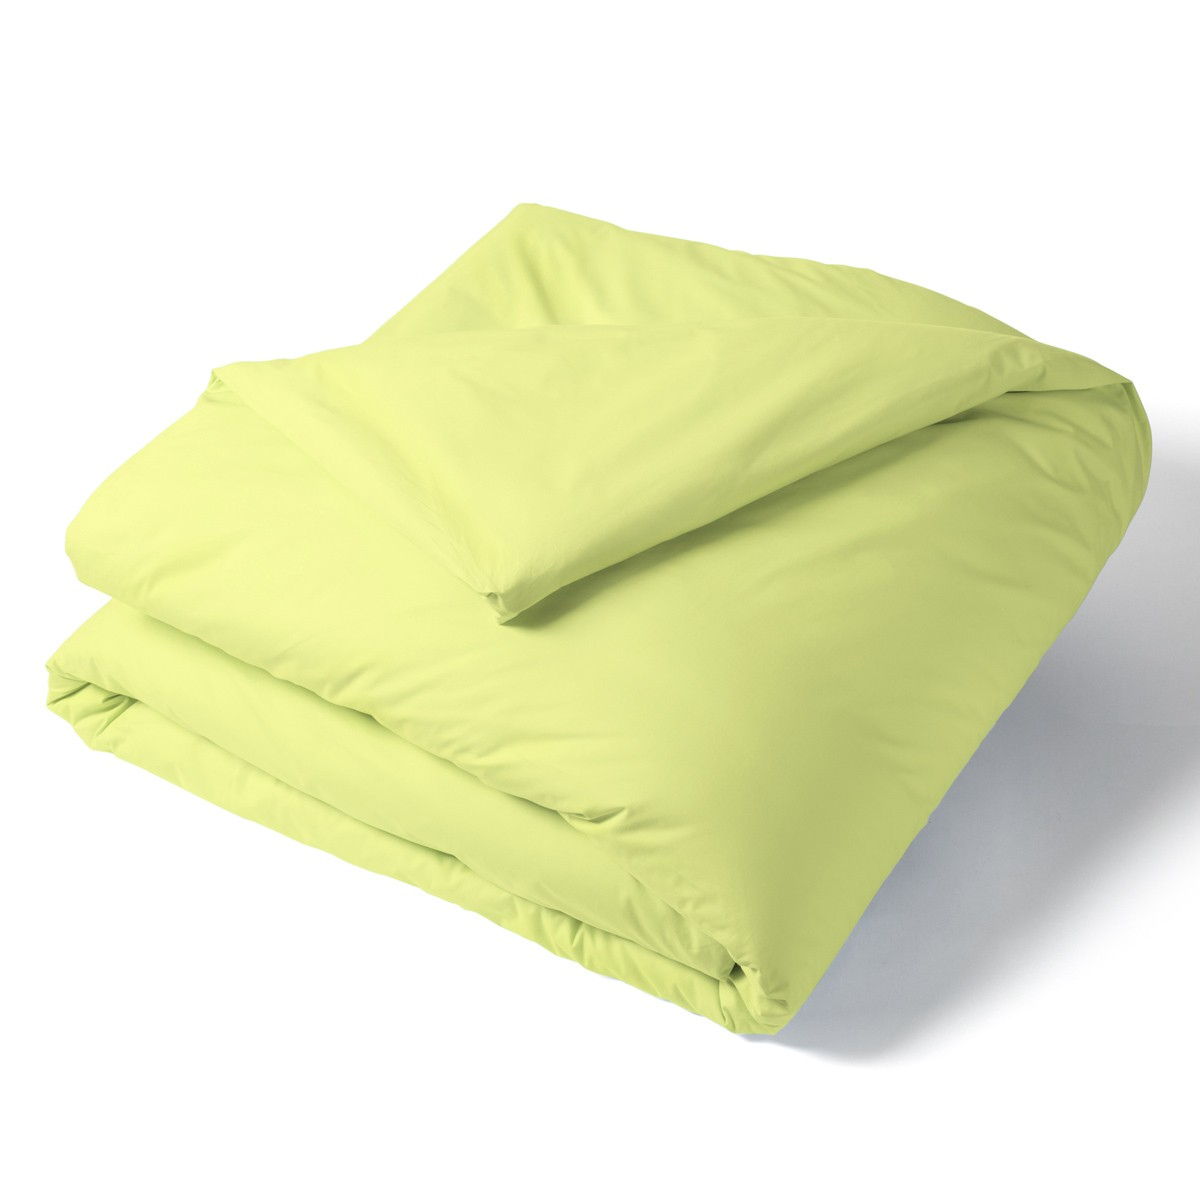 Duvet Cover Solid Color Percale yellow | Bed linen | Tradition des Vosges